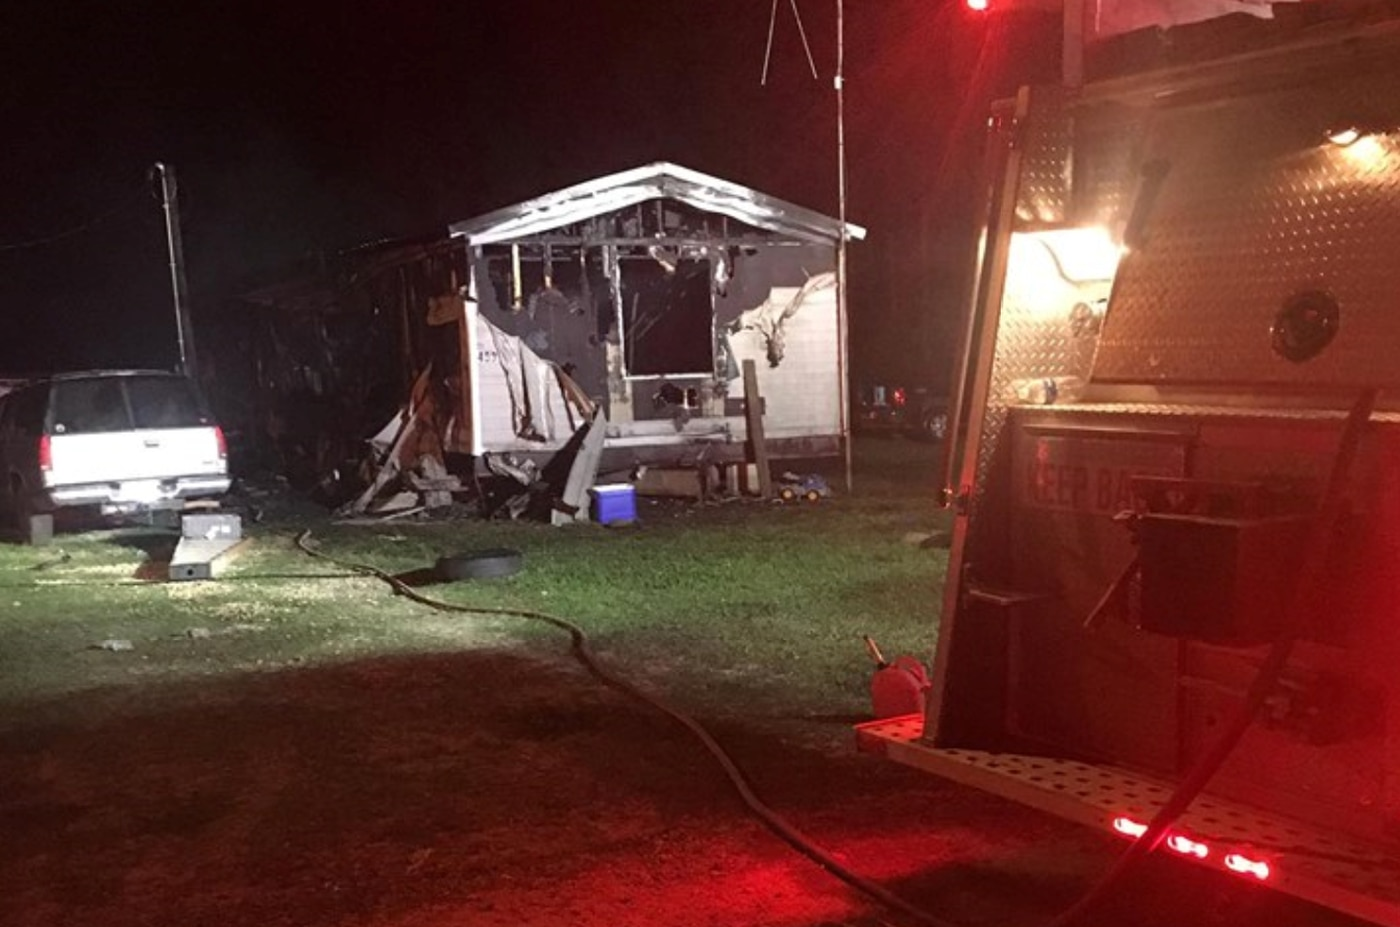 2 children killed, 5 injured in house fire in Louisiana